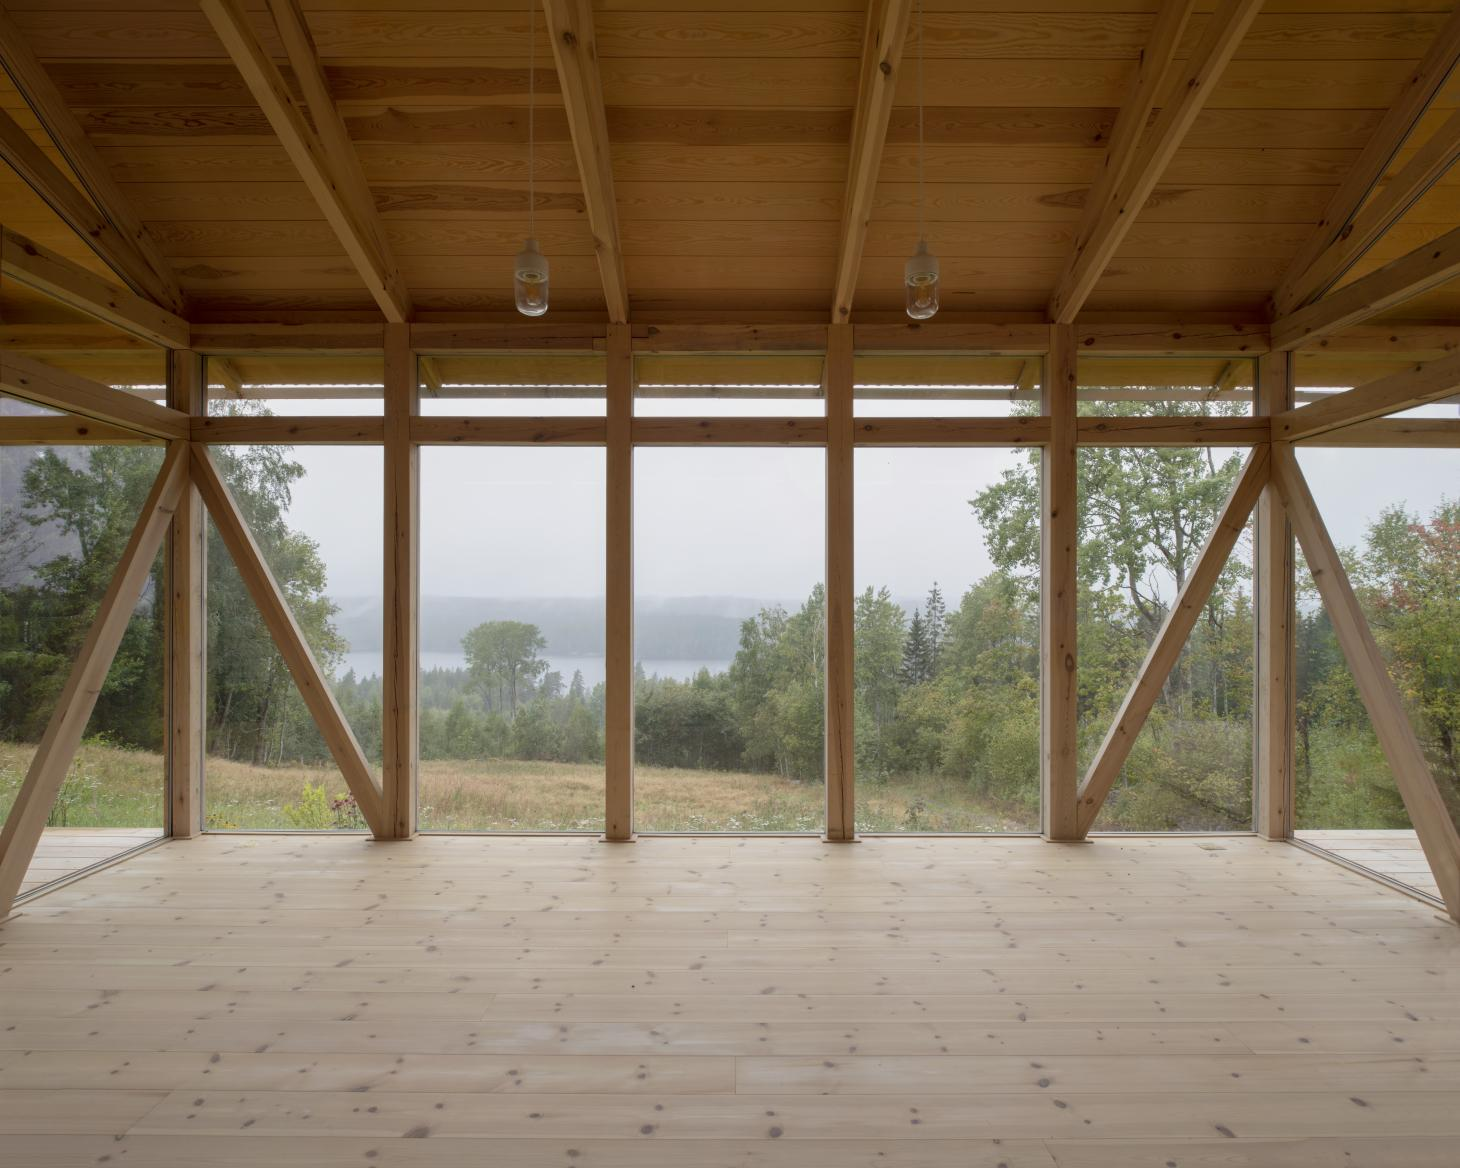 inside looking out at Swedish countryside cabin